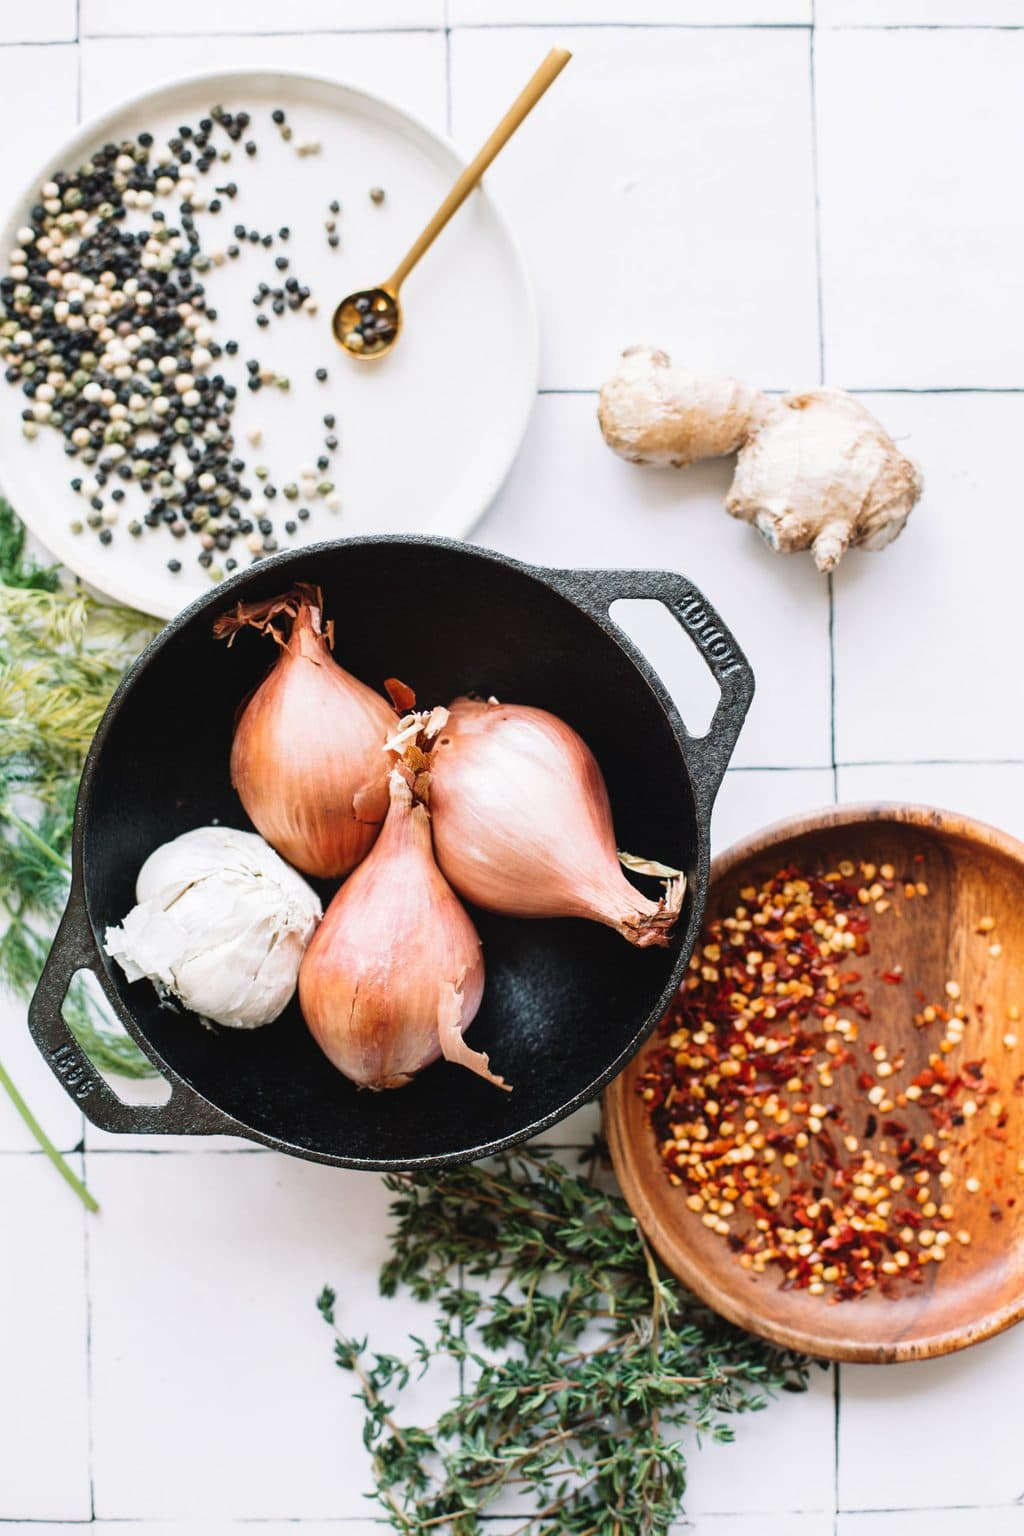 onions, garlic in stockpot with red papper flakes in brown bowl